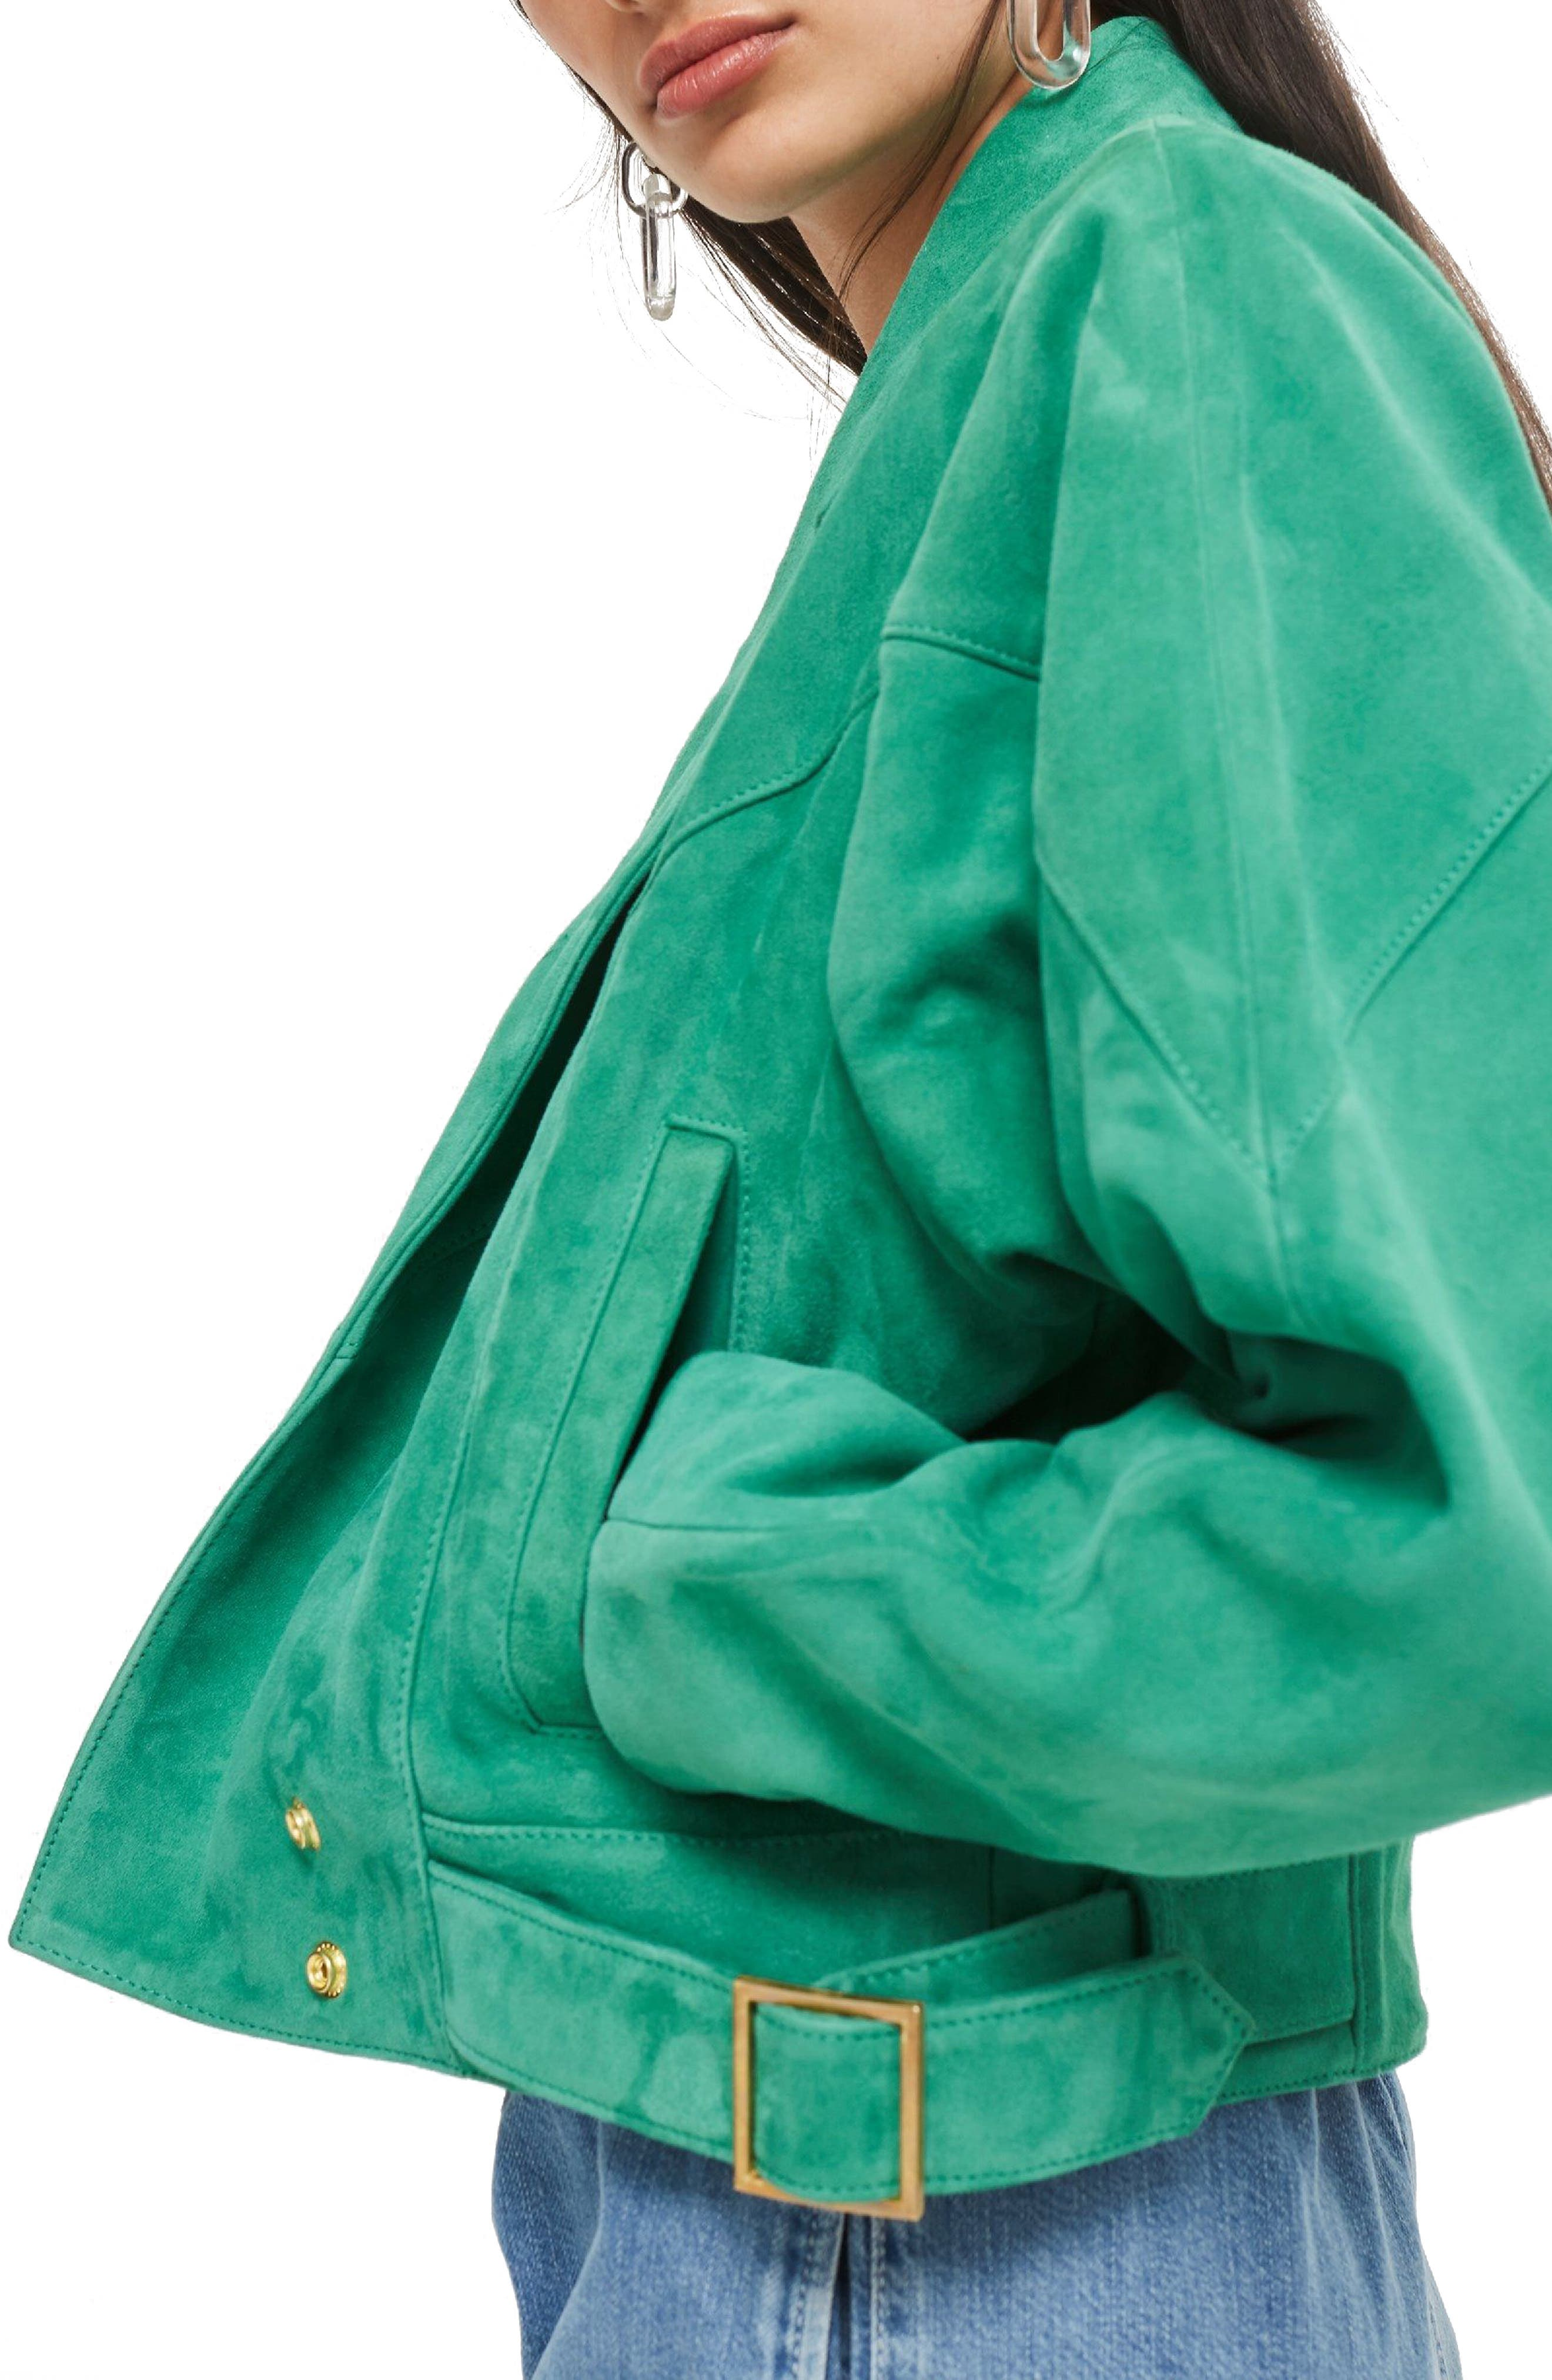 Hawkes Suede Jacket,                             Alternate thumbnail 2, color,                             300